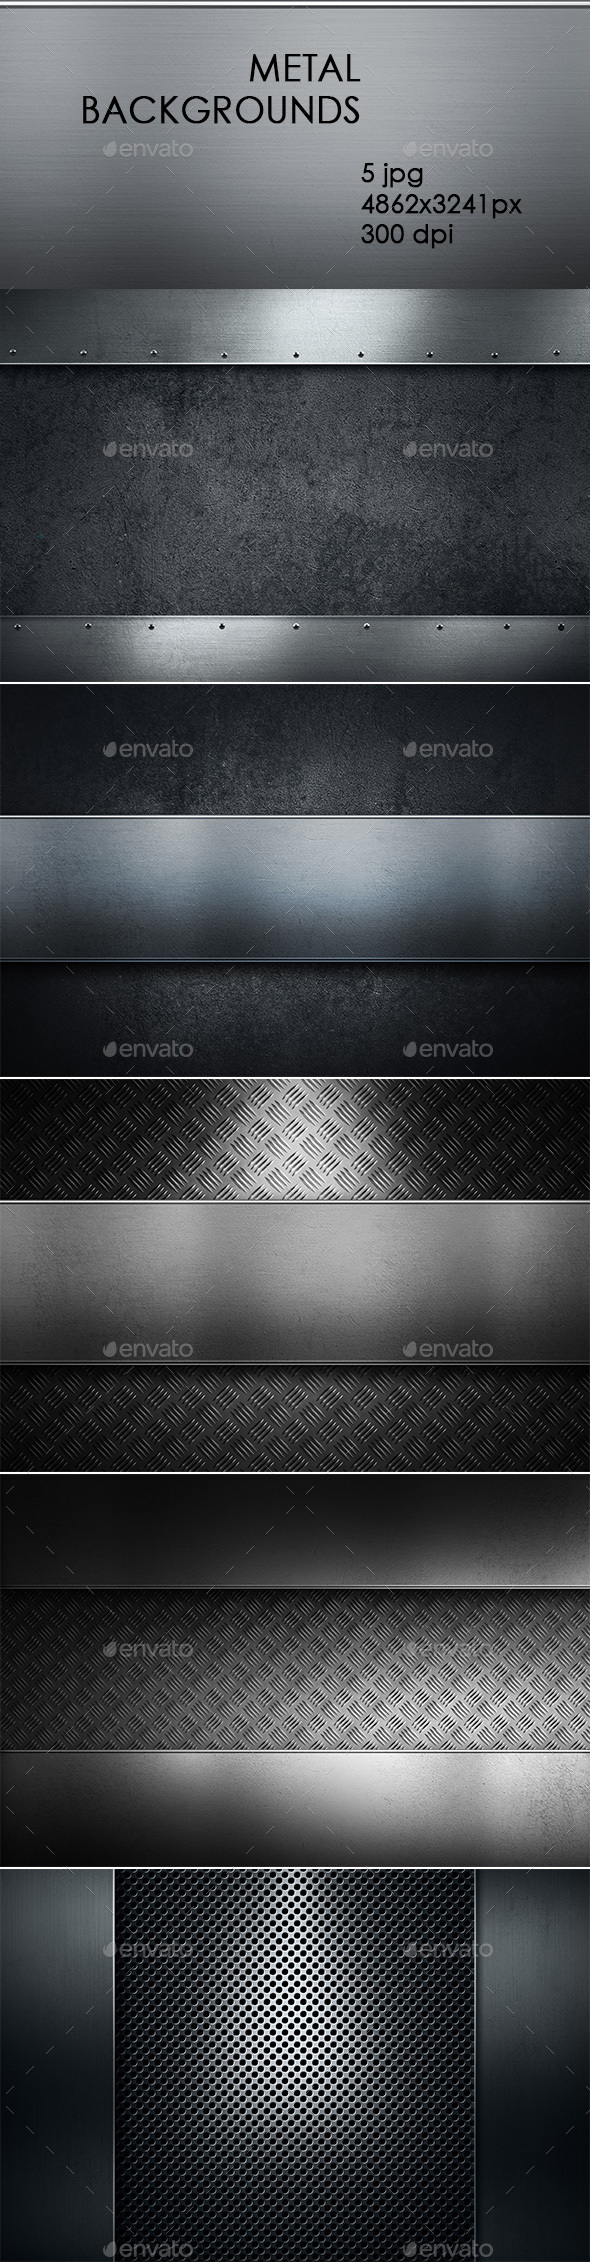 Metal Backgrounds - Abstract Backgrounds